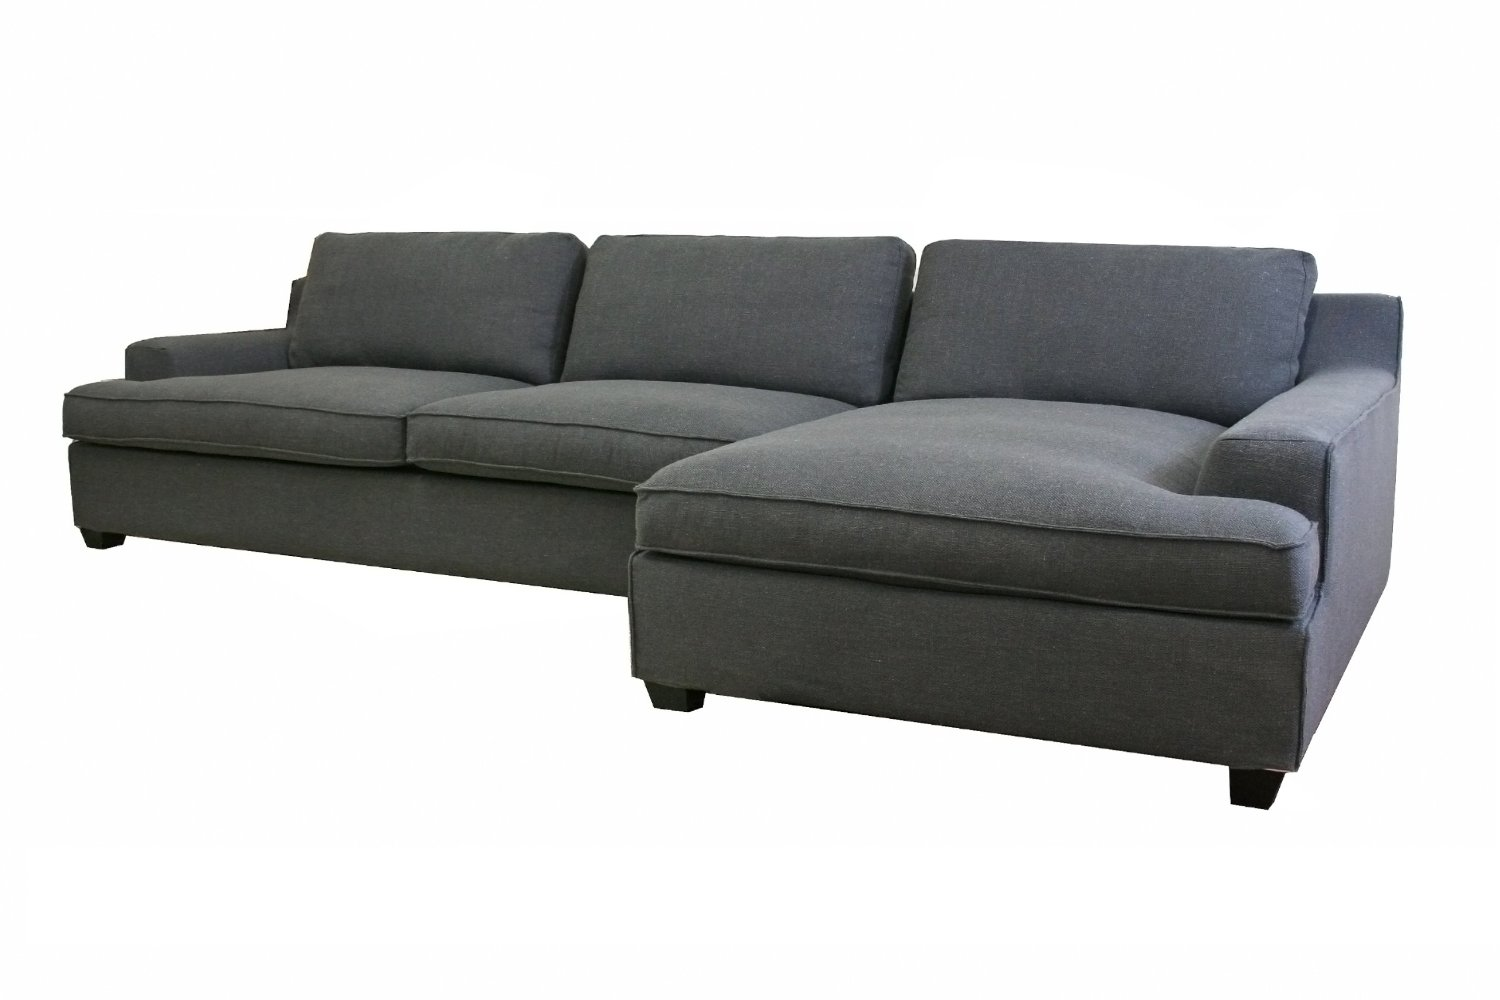 Designer Sleeper Couches South Africa Laura Williams